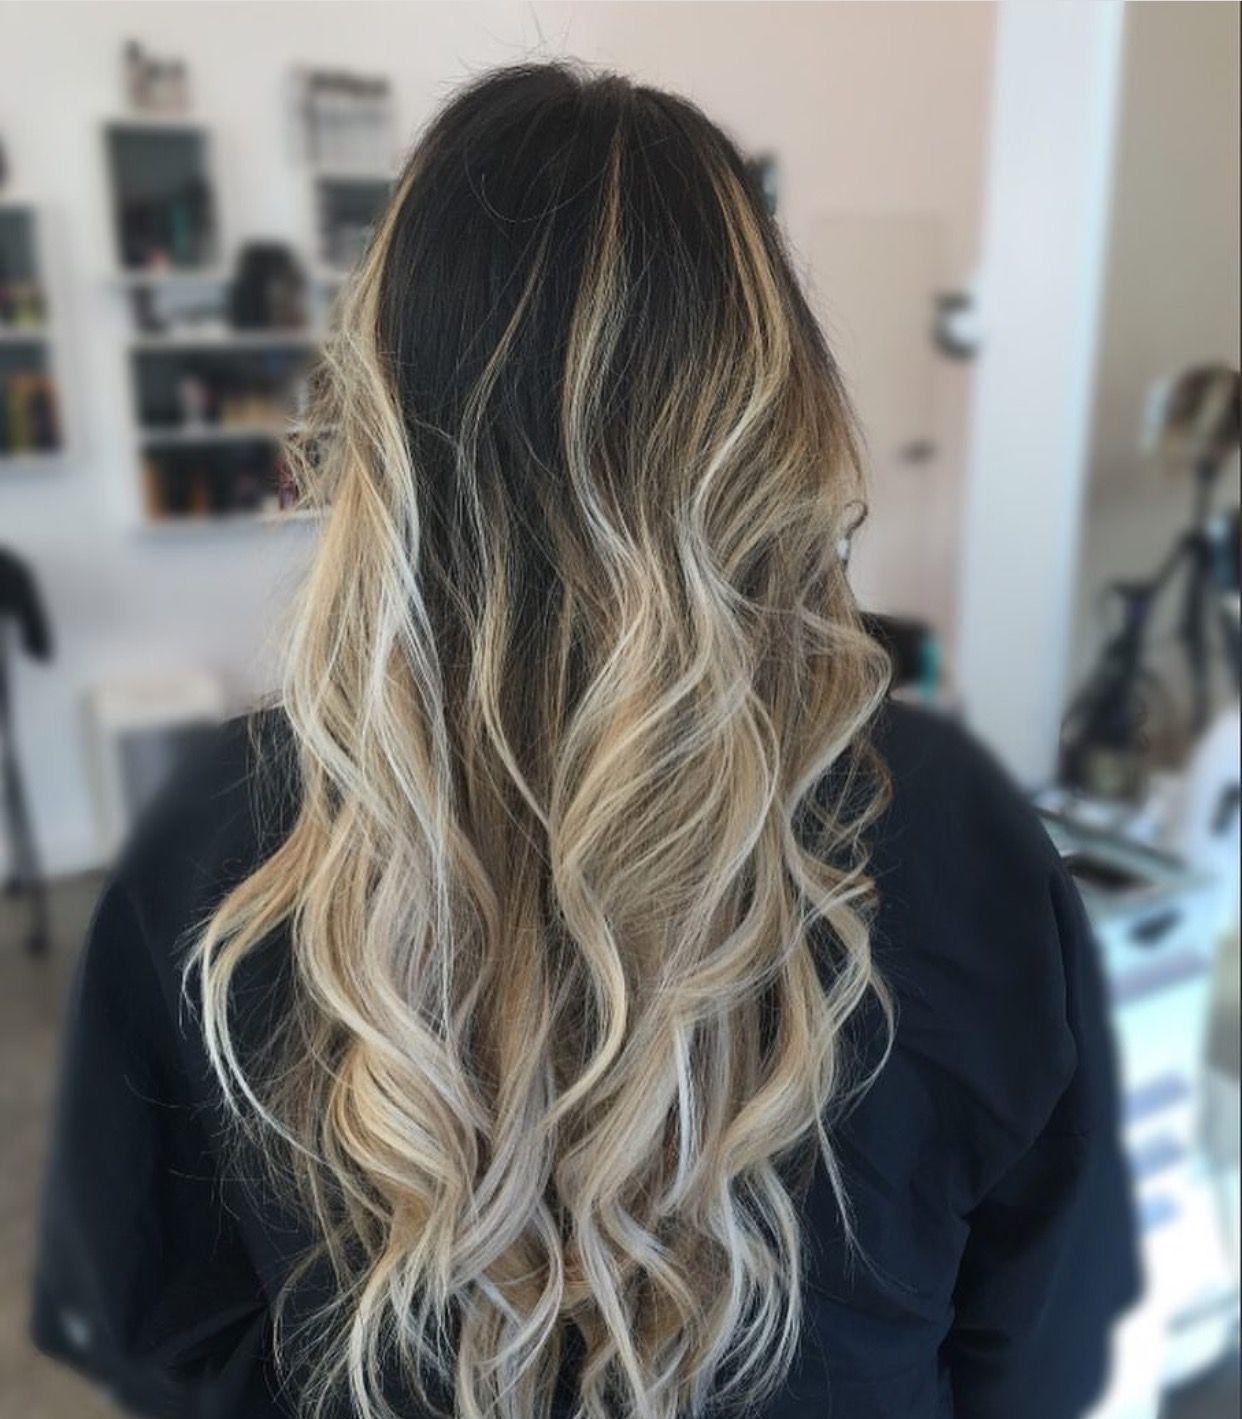 Dark brown to blonde balayage ombré h a i r pinterest blonde